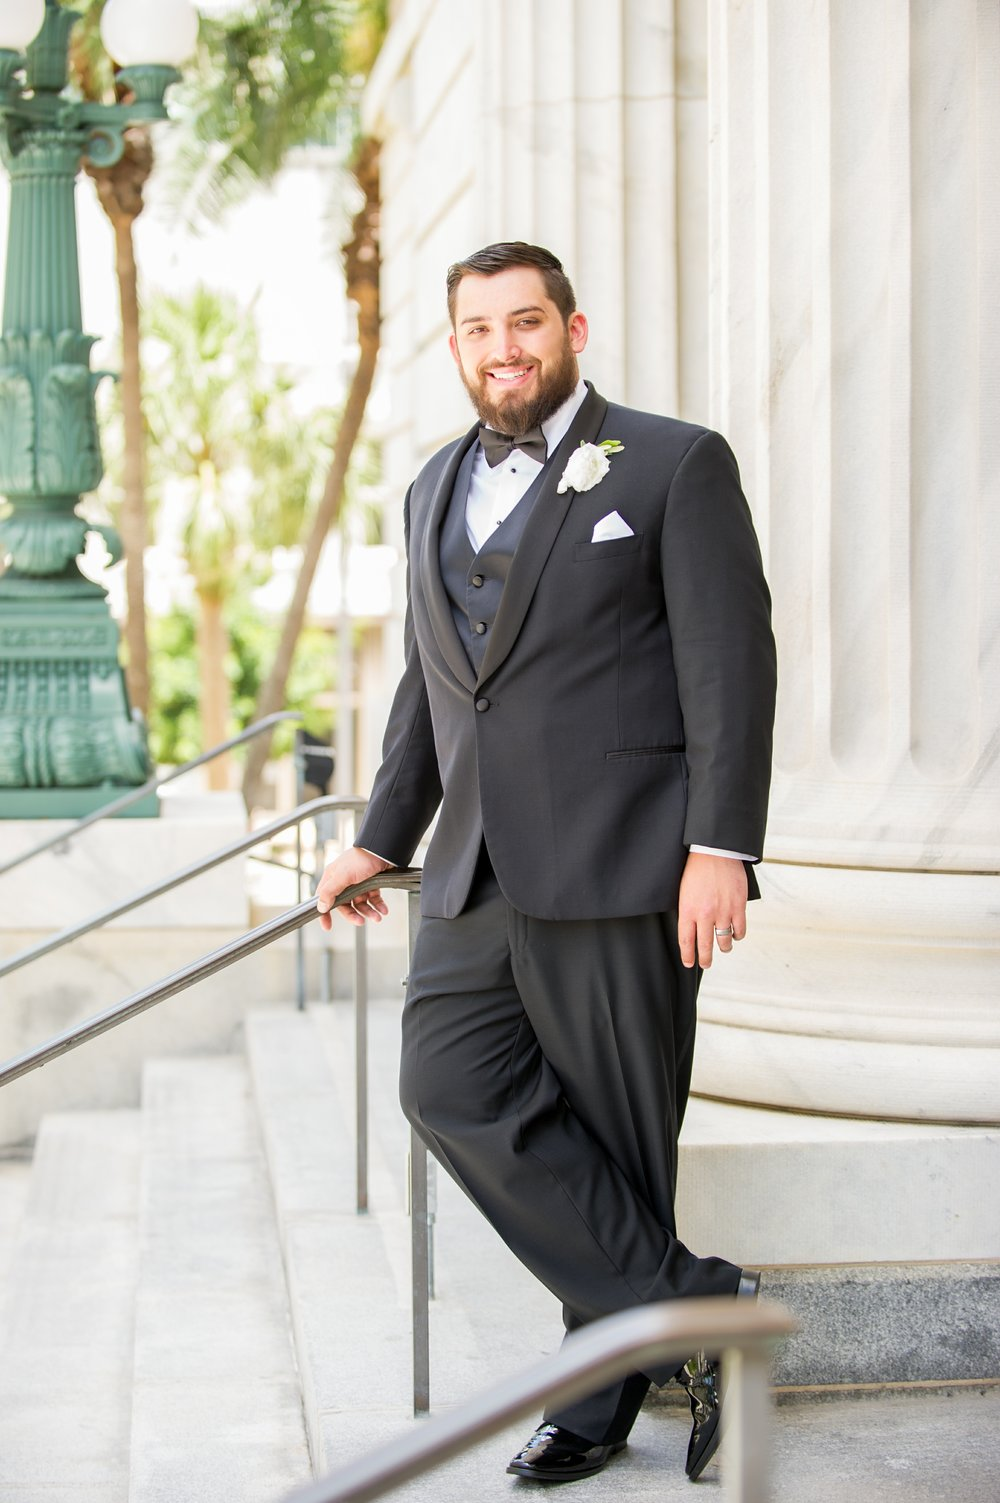 The groom looked sharp in his traditional three-piece black tuxedo, with a simple white floral boutonniere.